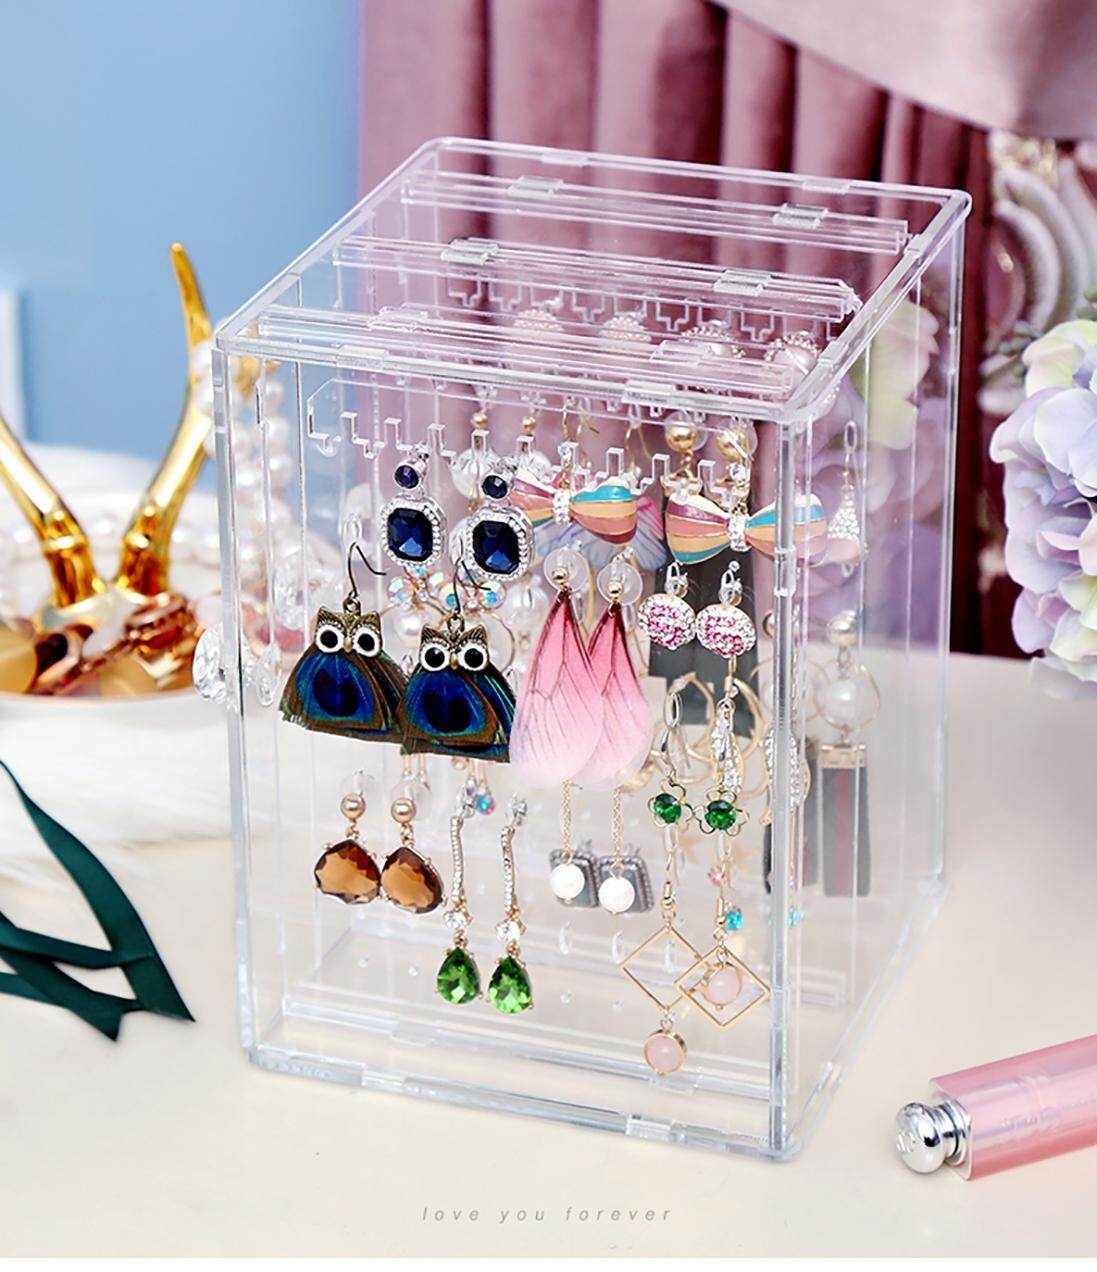 High Quality Premium Acrylic Earring Storage Organizer Rack By Dat Store.